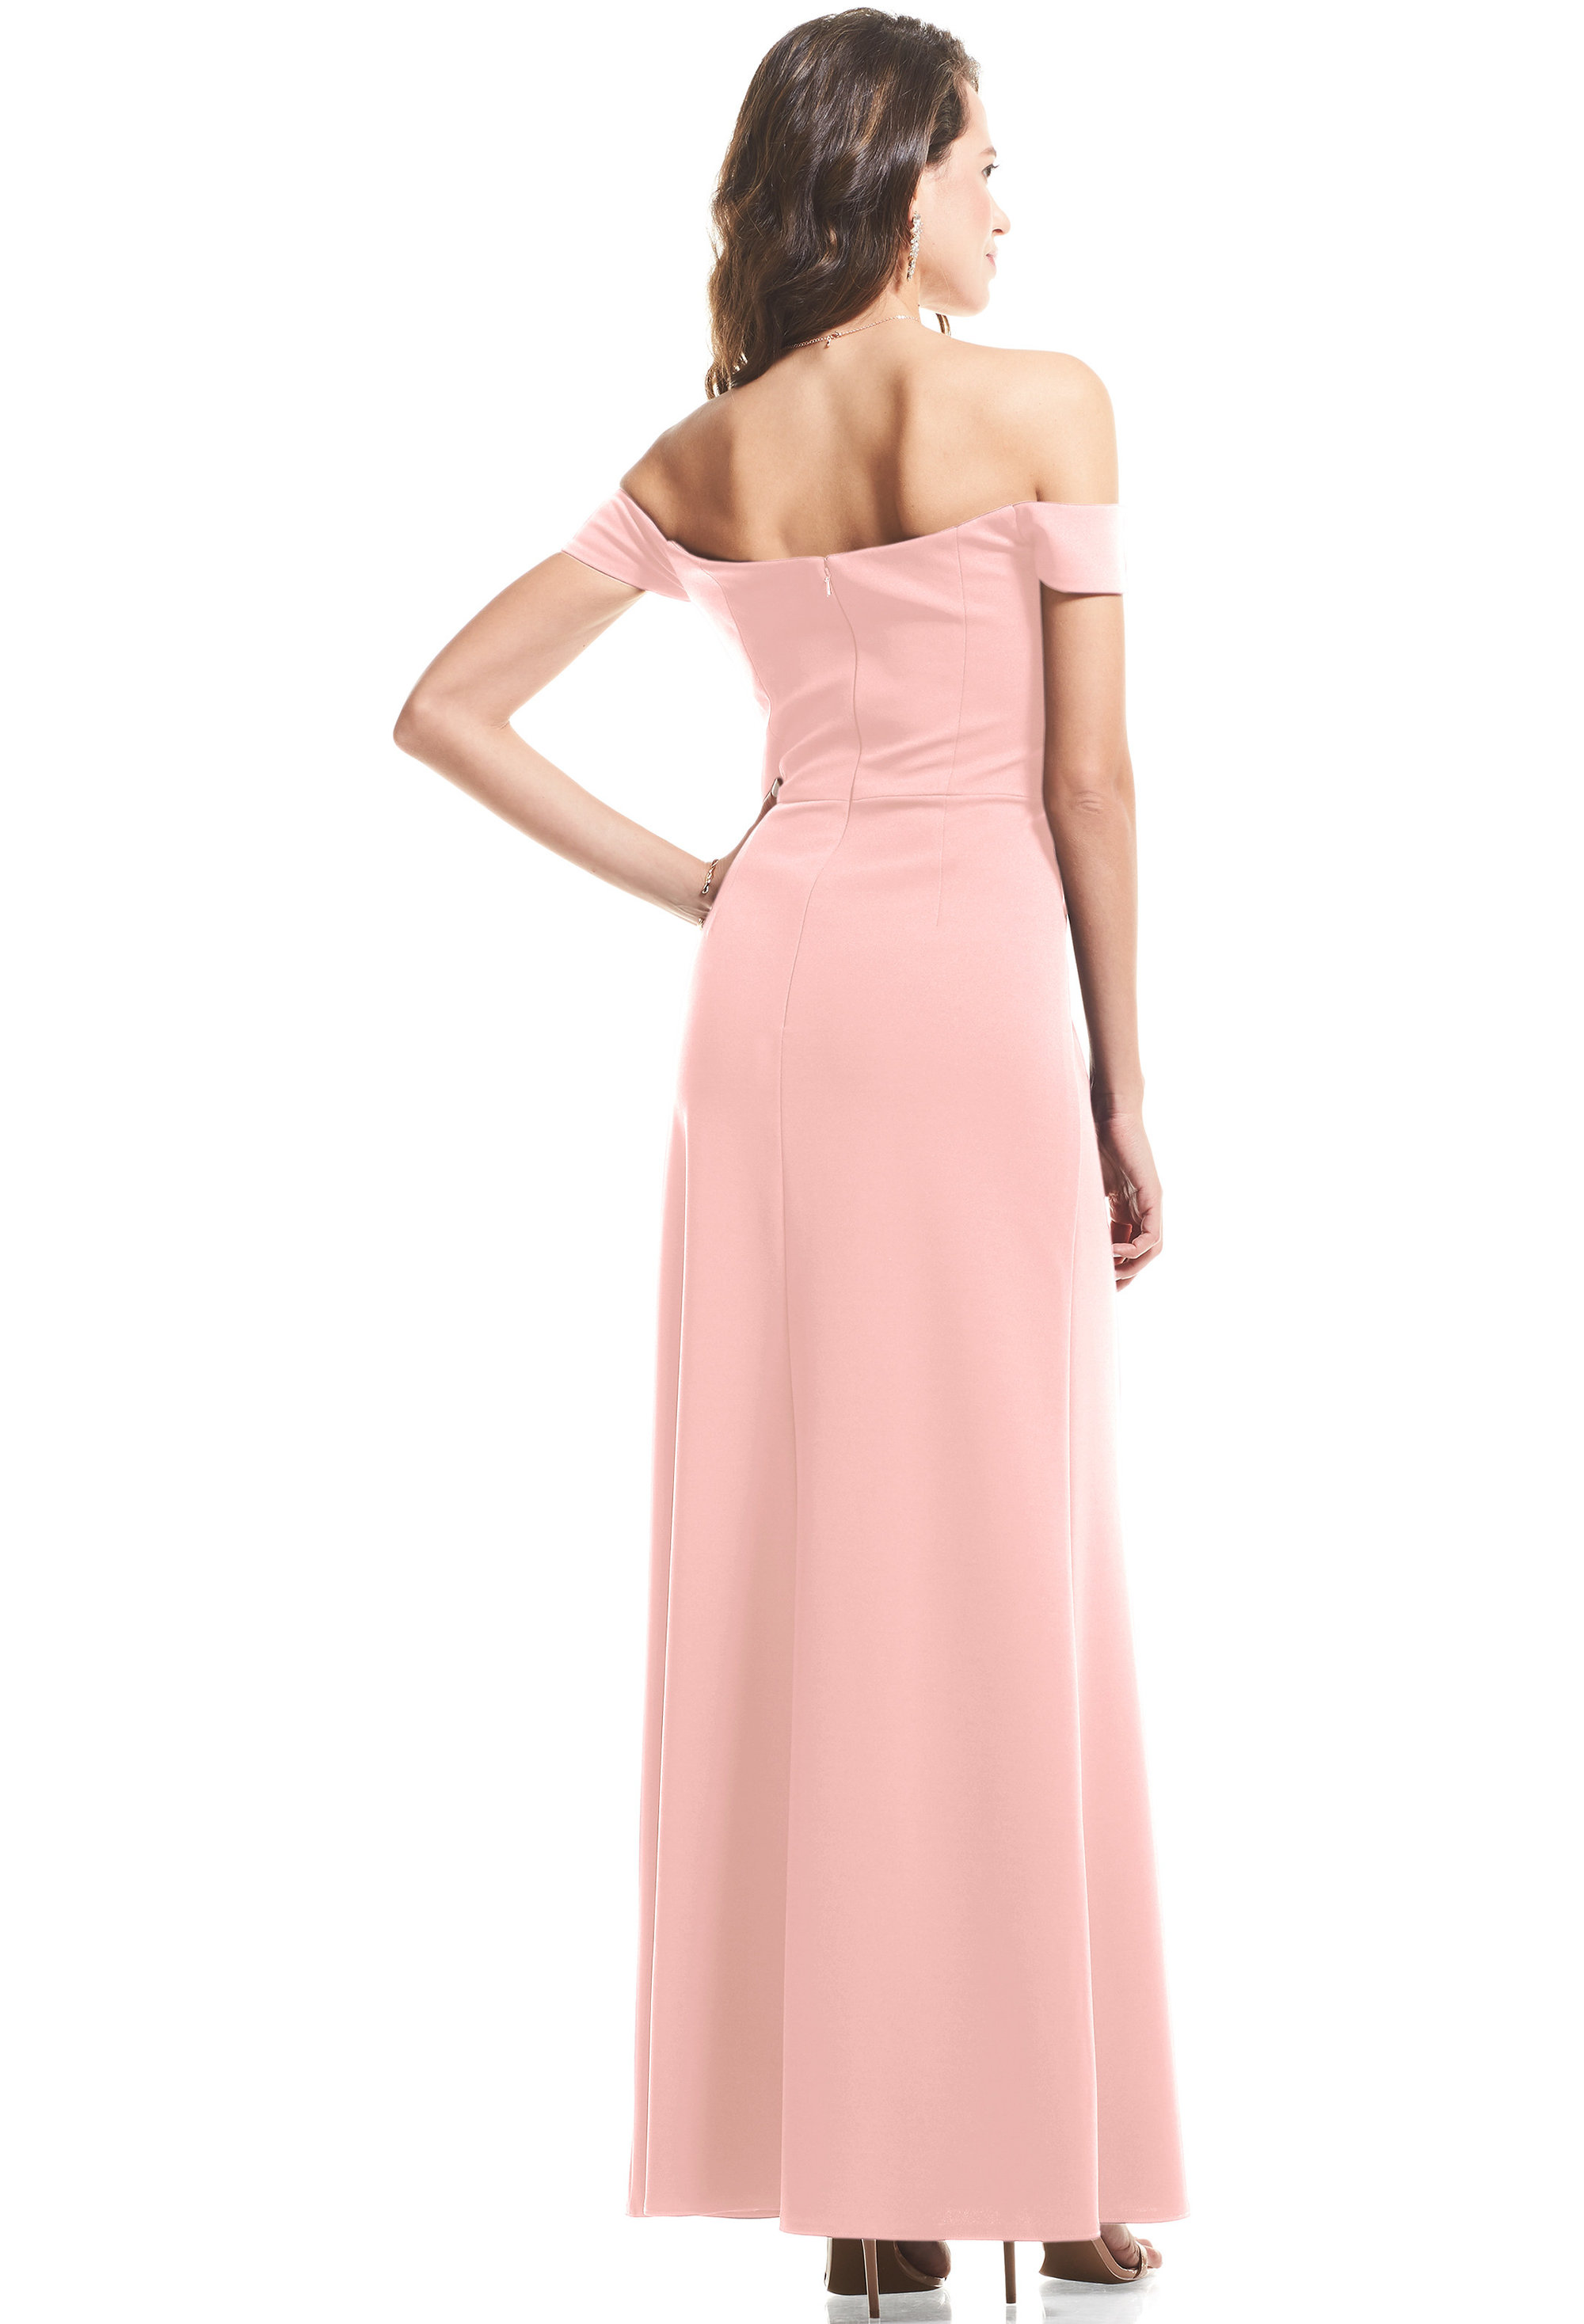 Bill Levkoff FROST ROSE Stretch Crepe Off The Shoulder Mermaid gown, $99.00 Back